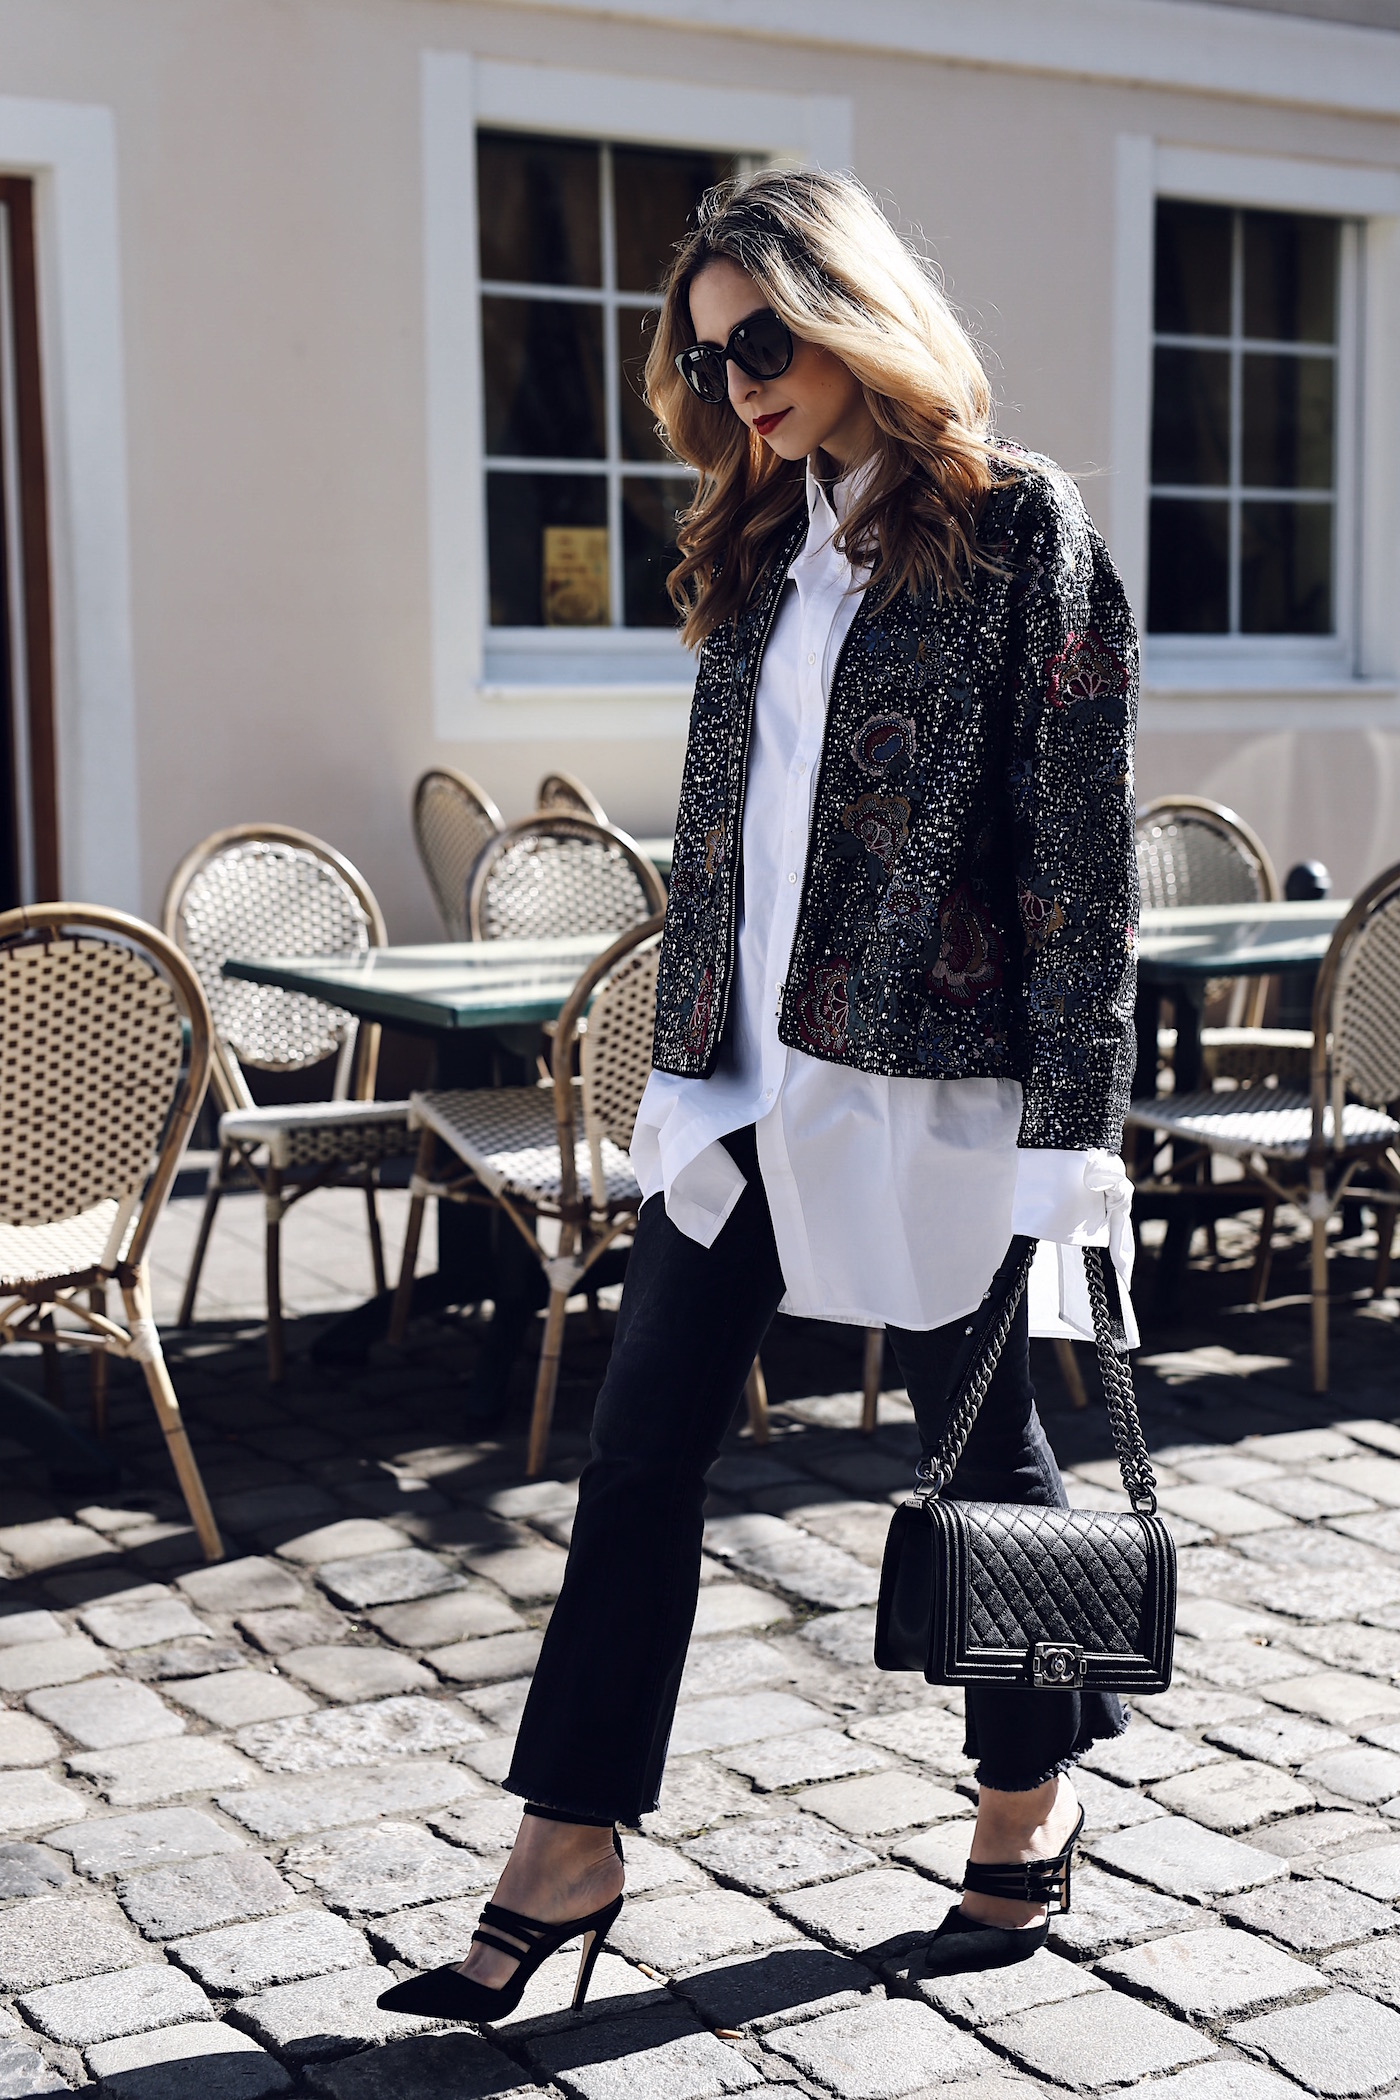 Monochrome Spring Outfit with Embroidered Bomber Jacket